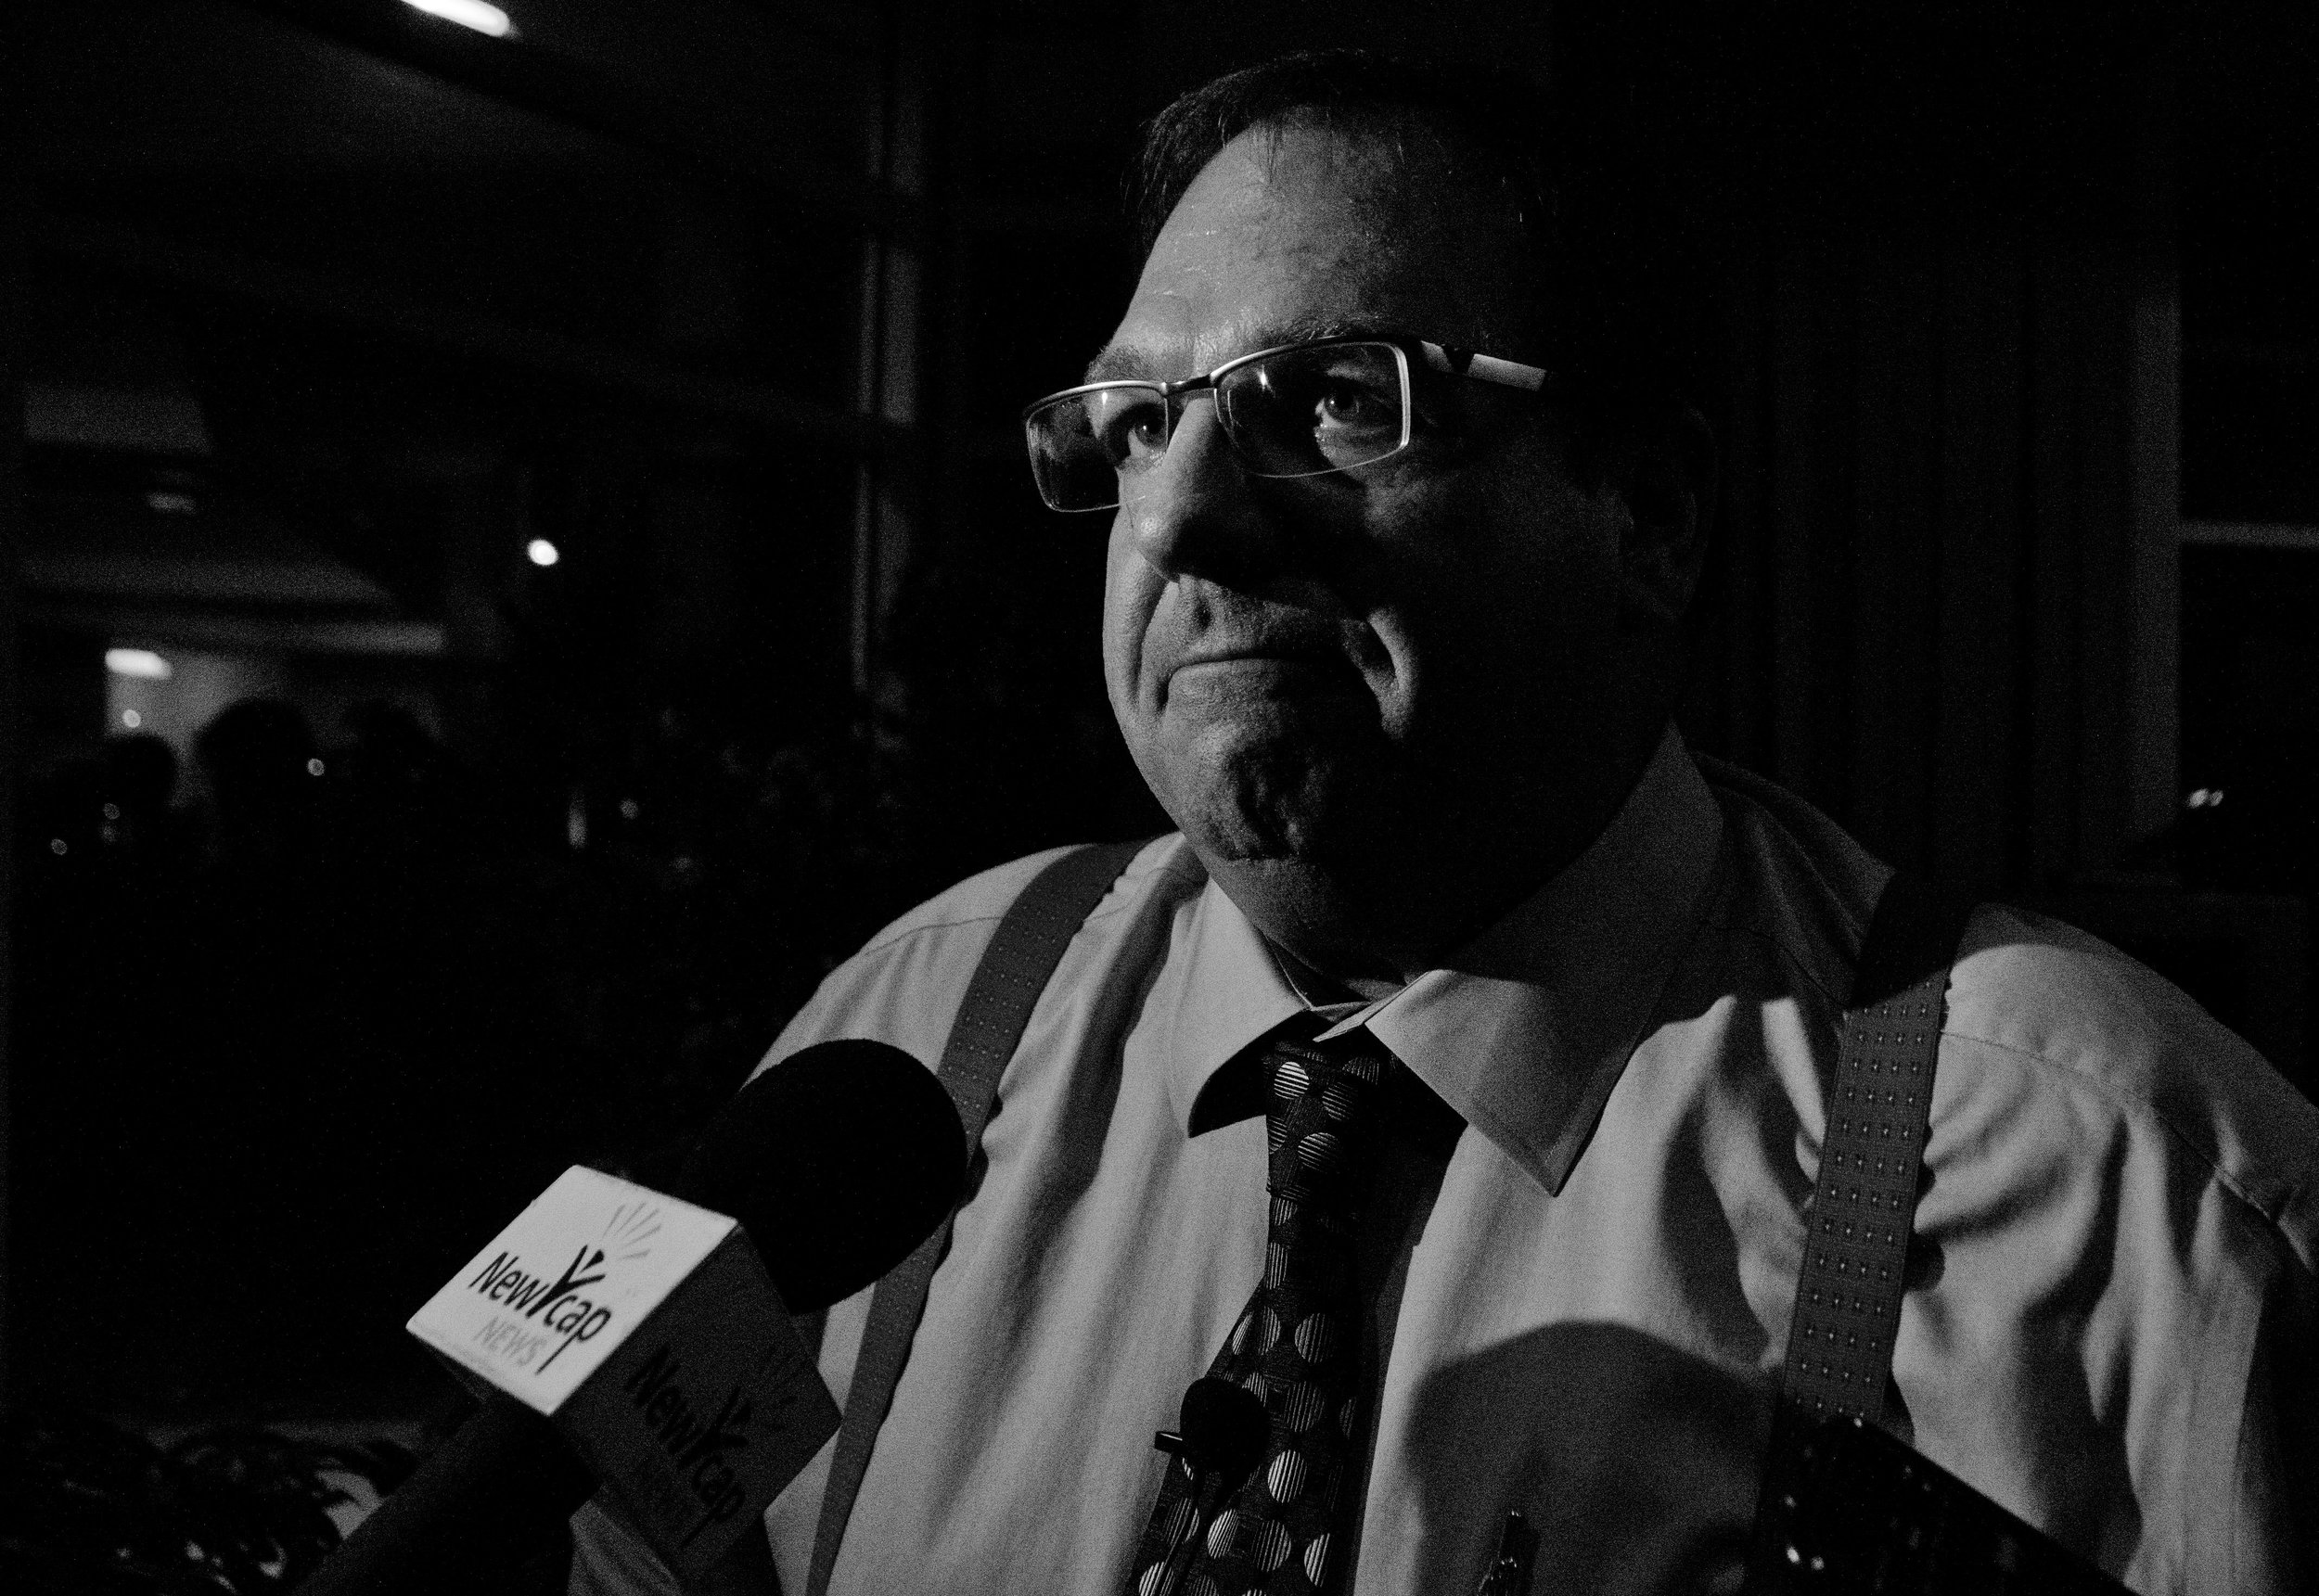 Aalbers spoke to the press after his speech. This is one of the frames from that discussion.